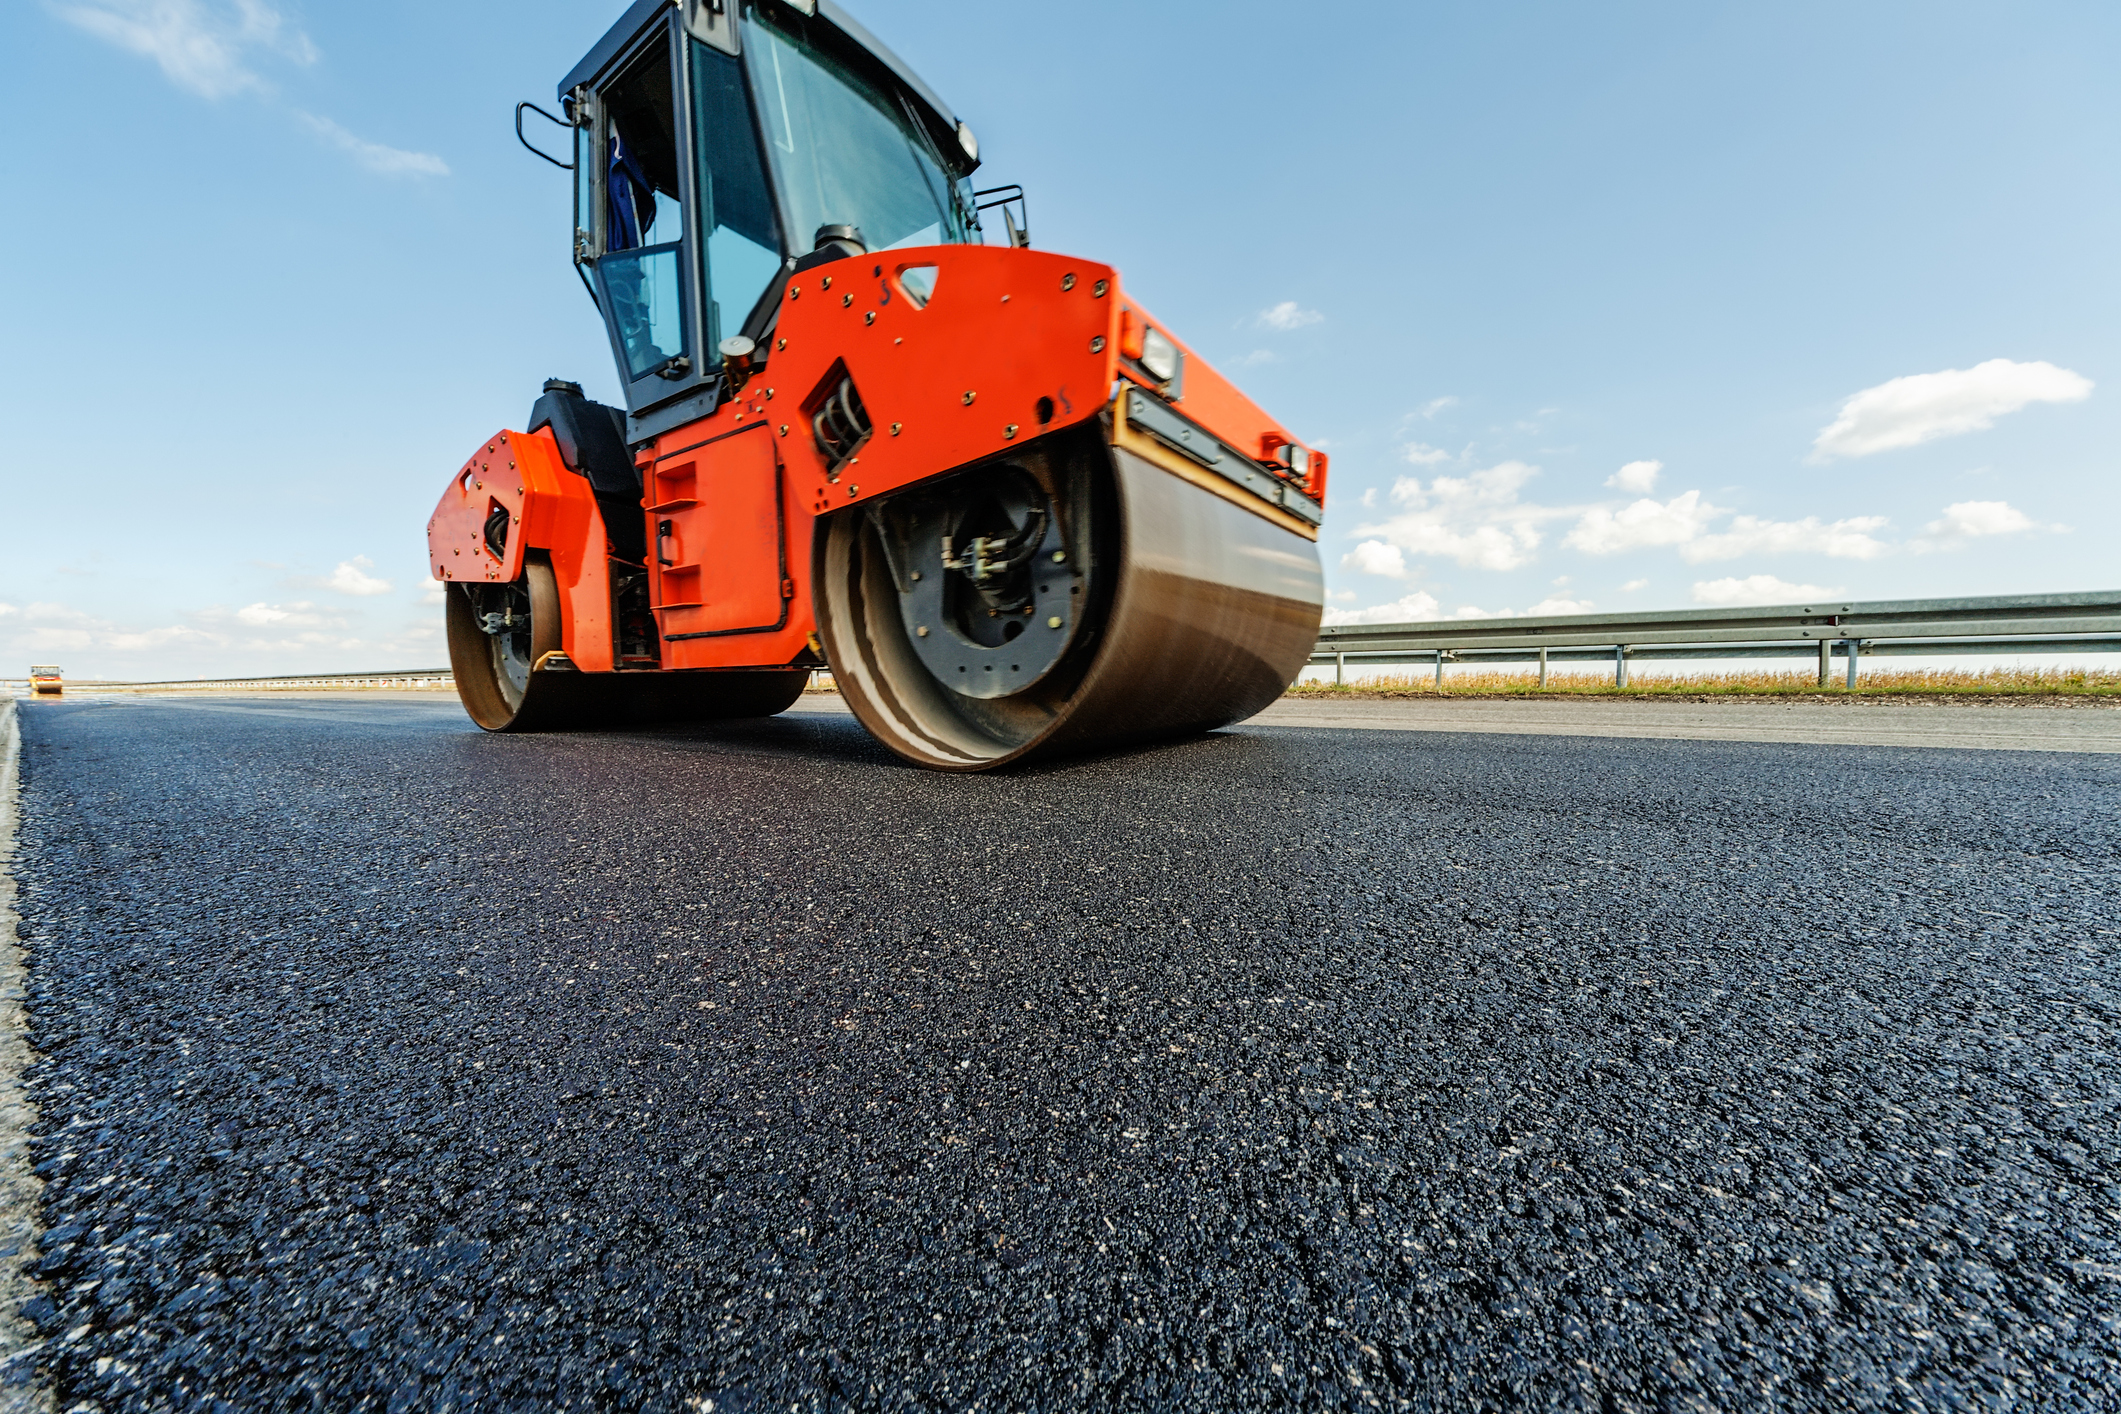 Asphalt Paving - Asphalt, you may not think about it but it's something you drive or walk on almost every day of your life. Quality matters whether your paving a parking lot, a residential driveway or simply doing a repair. Hiring the right paving contractor is the key to making sure that you have years of trouble free asphalt.